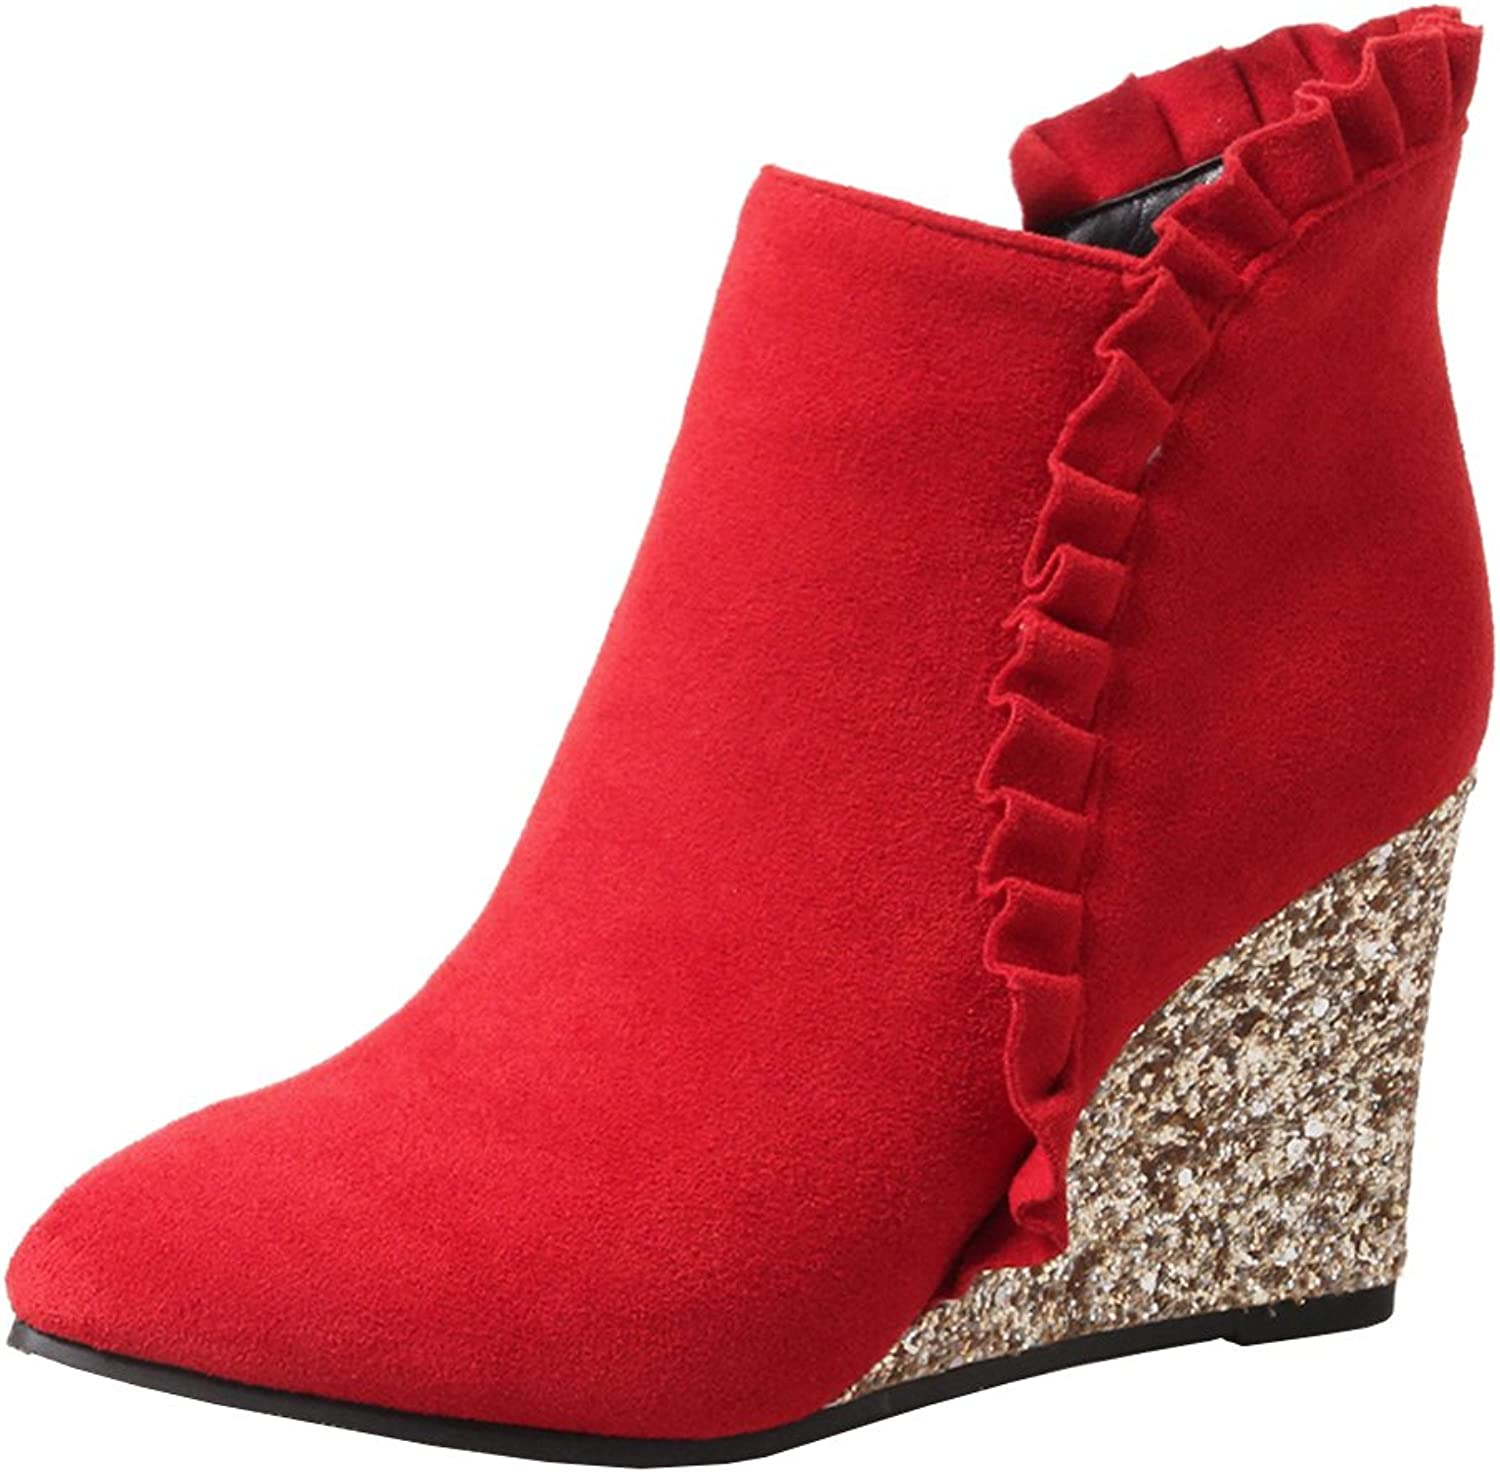 Agodor Women's High Wedge Heel Lace Ankle Boots with Zip Elegant Pointed Toe Autumn Winter shoes